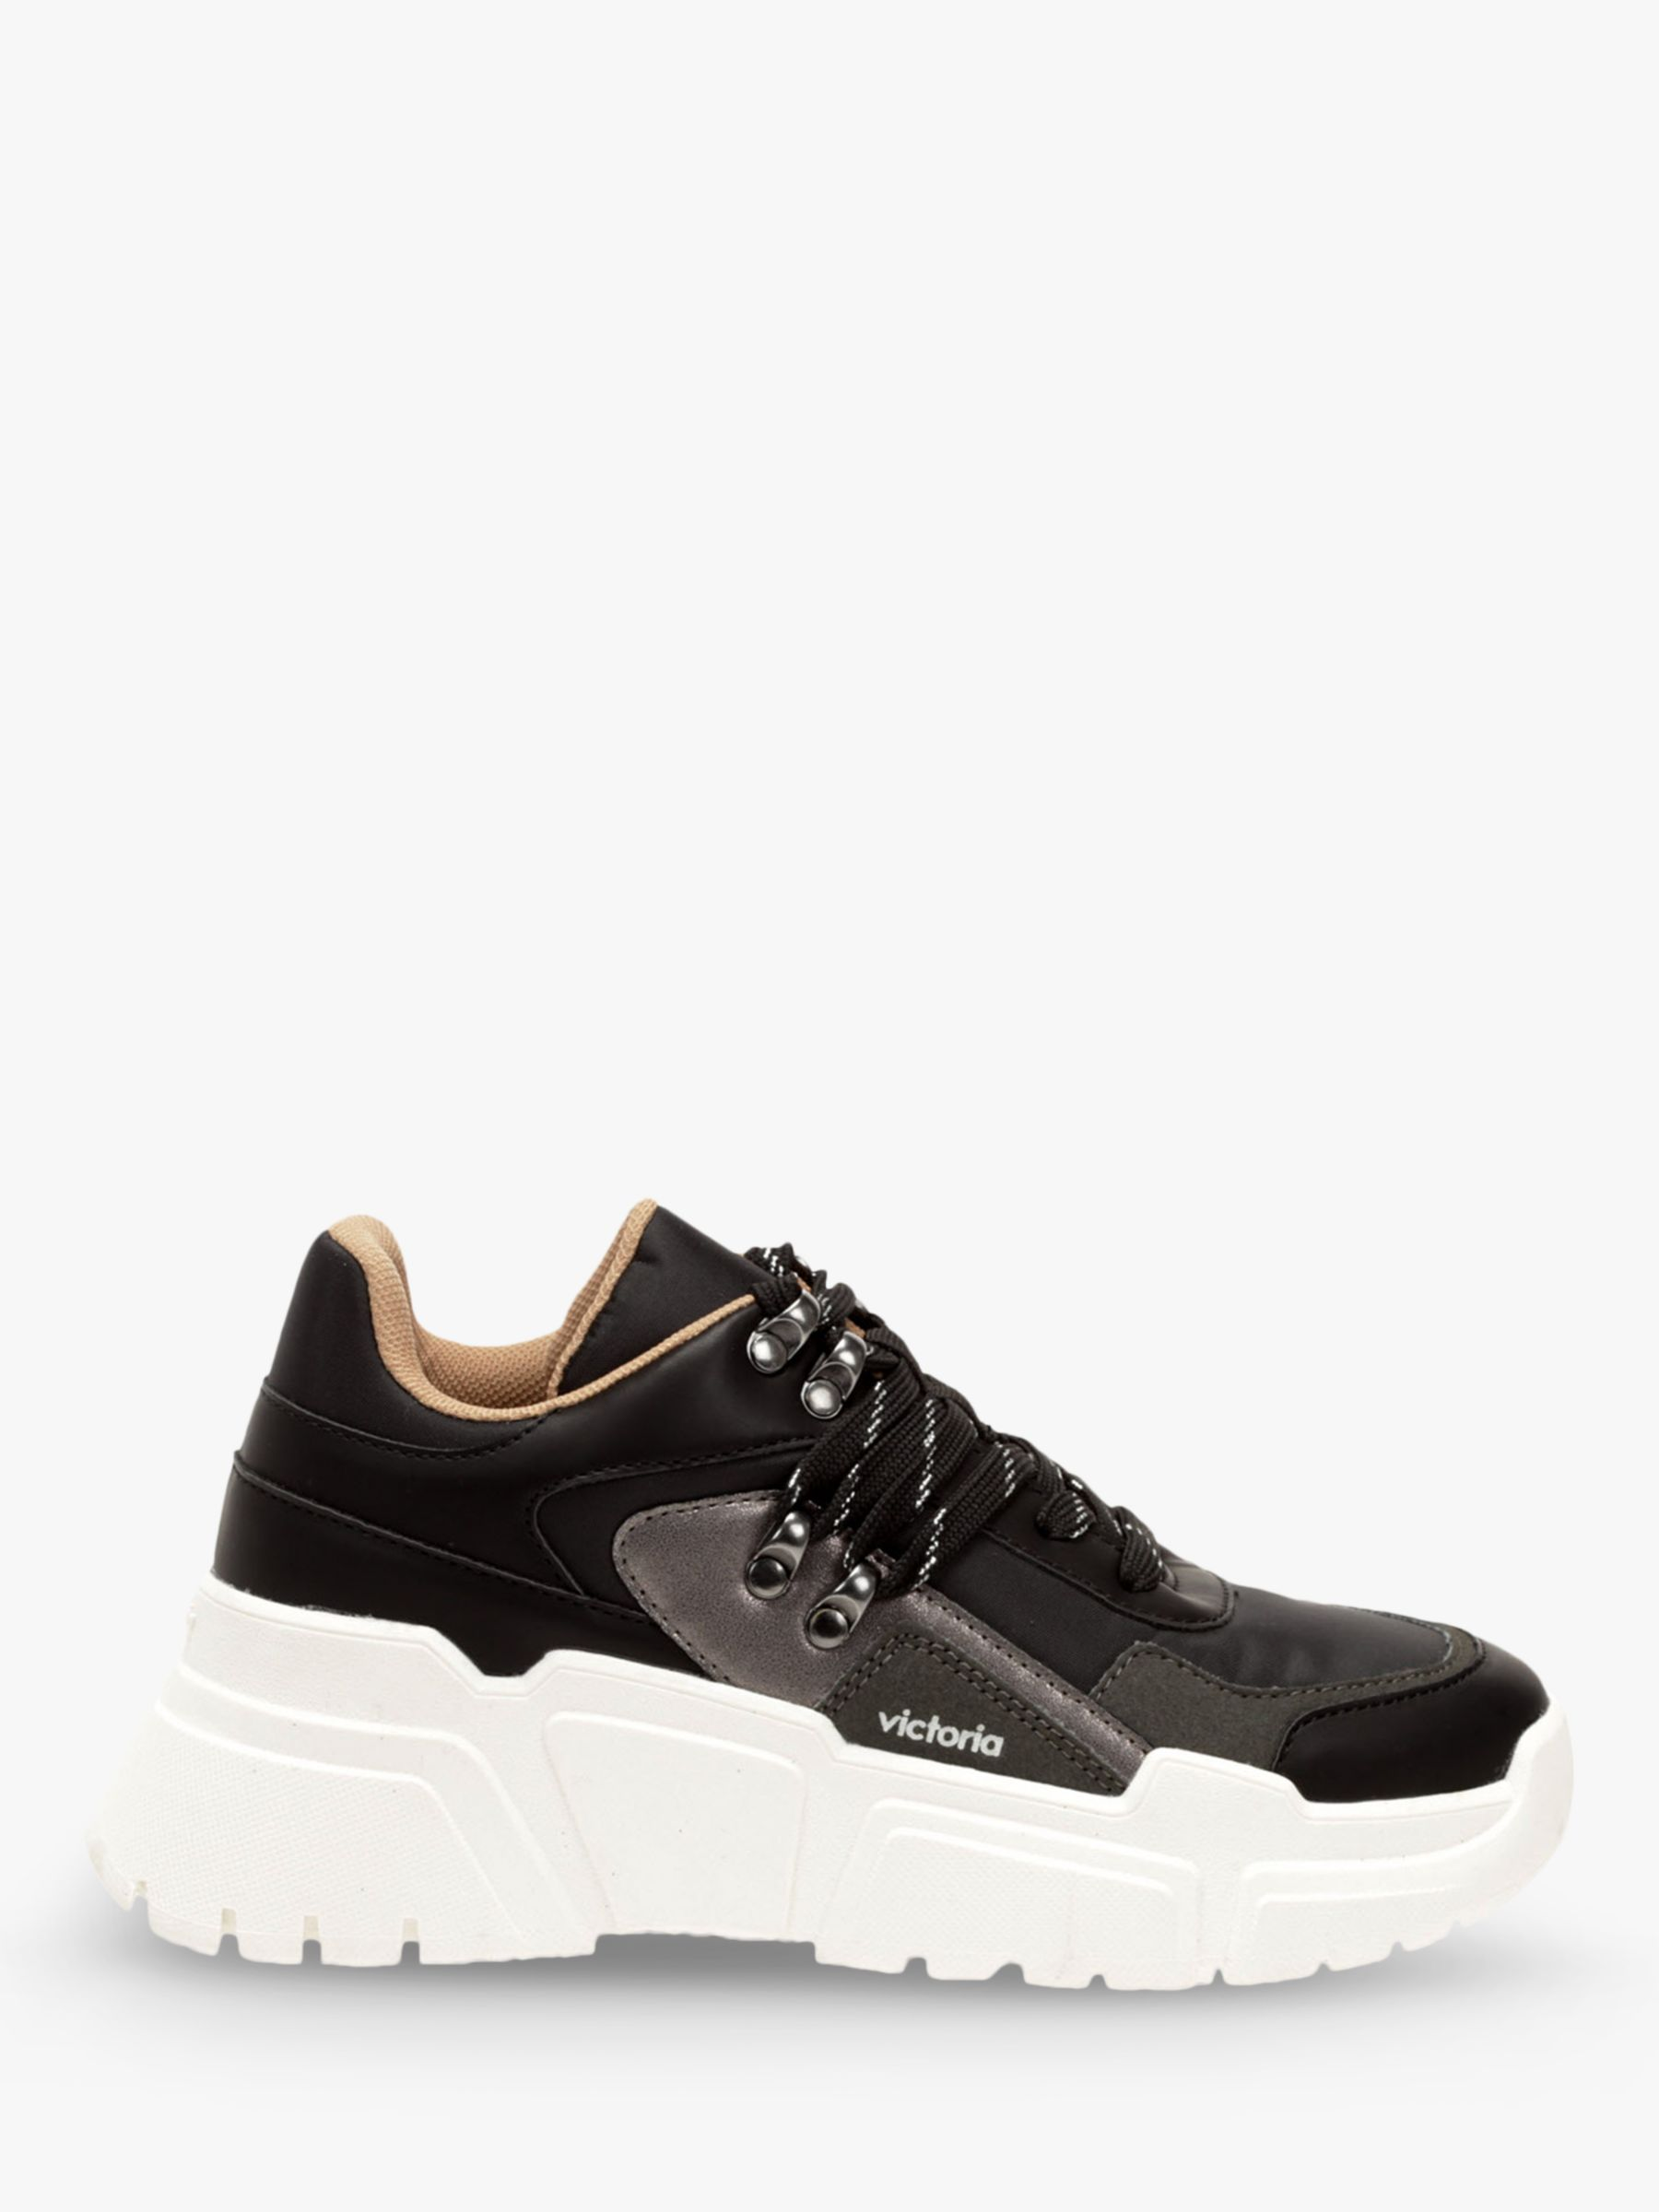 Victoria Shoes Victoria Shoes Totem Chunky Trainers, Black